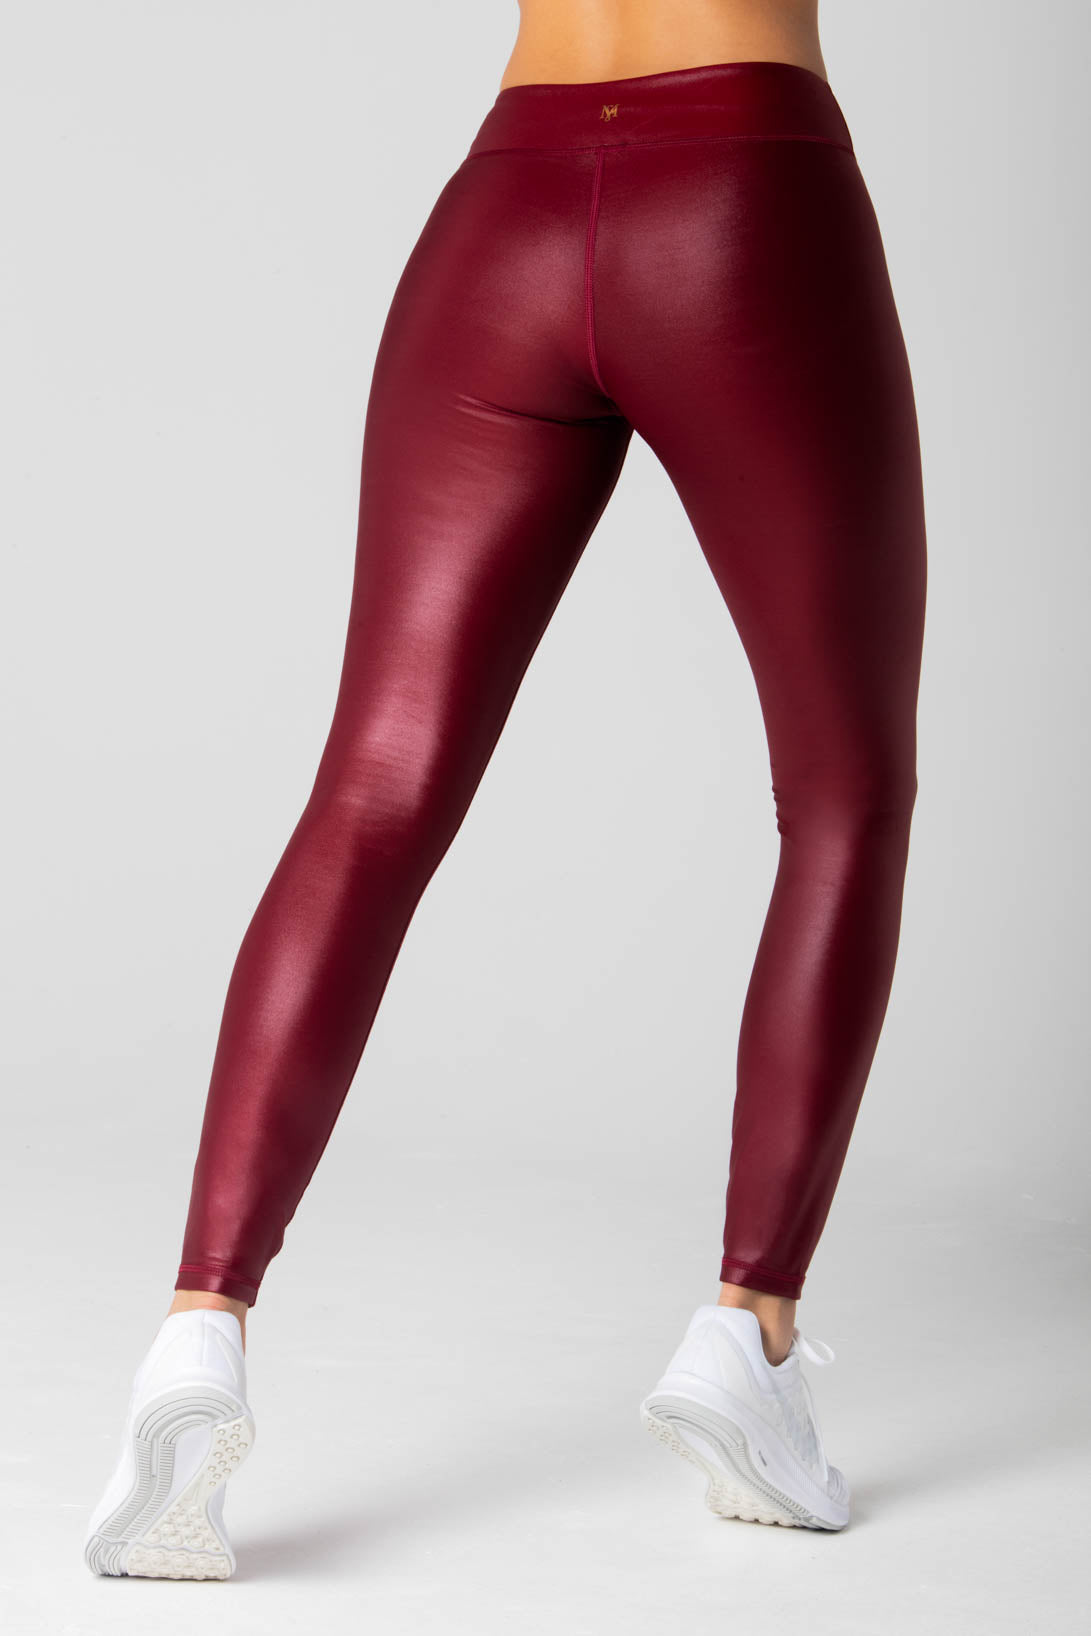 Sedona Liquid legging